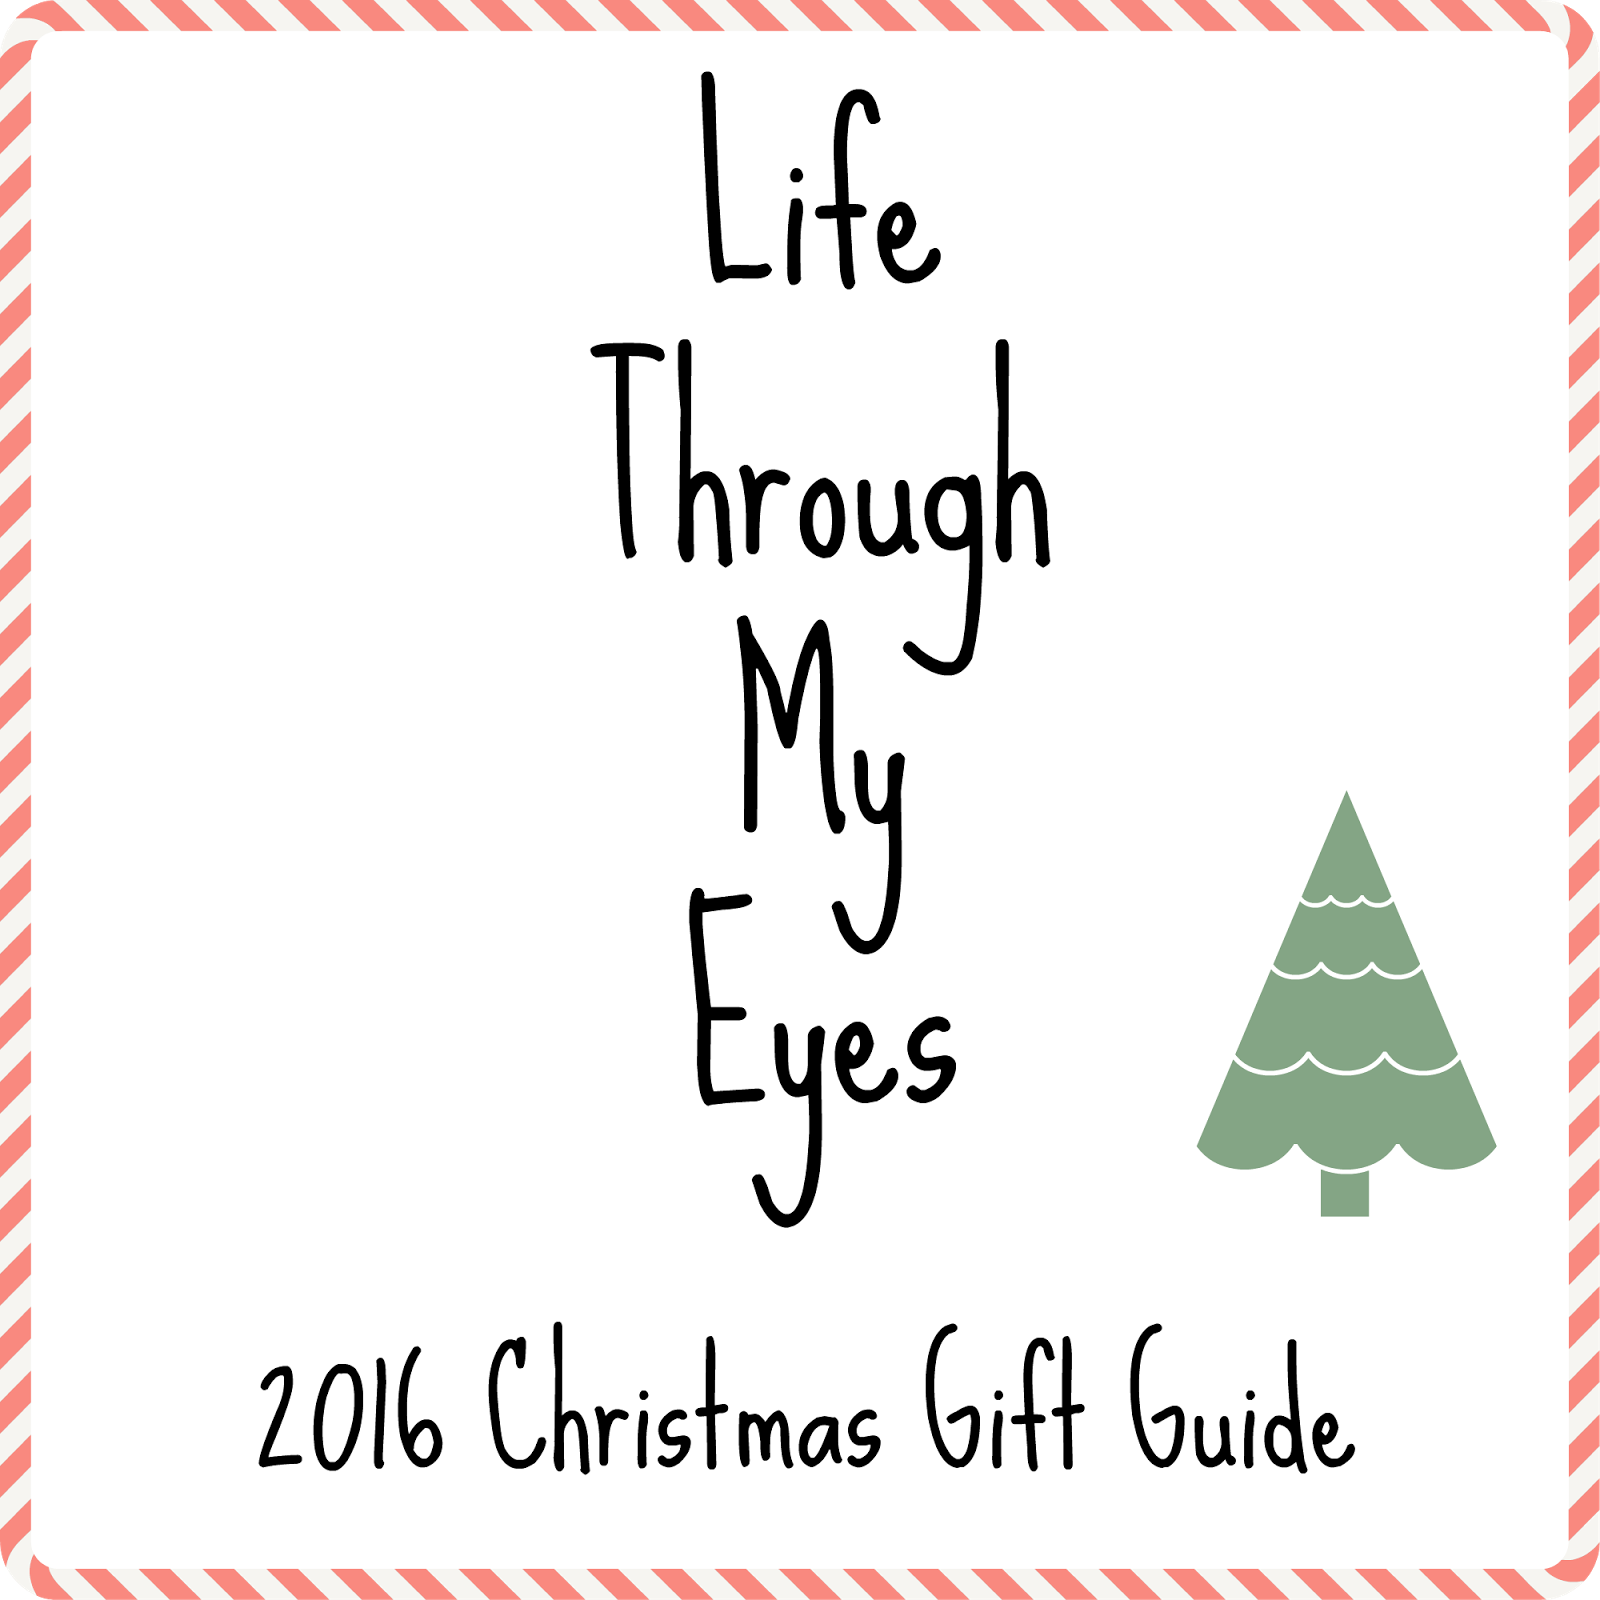 Life Through My Eyes: Christmas Gift Guide 2016 - Dads